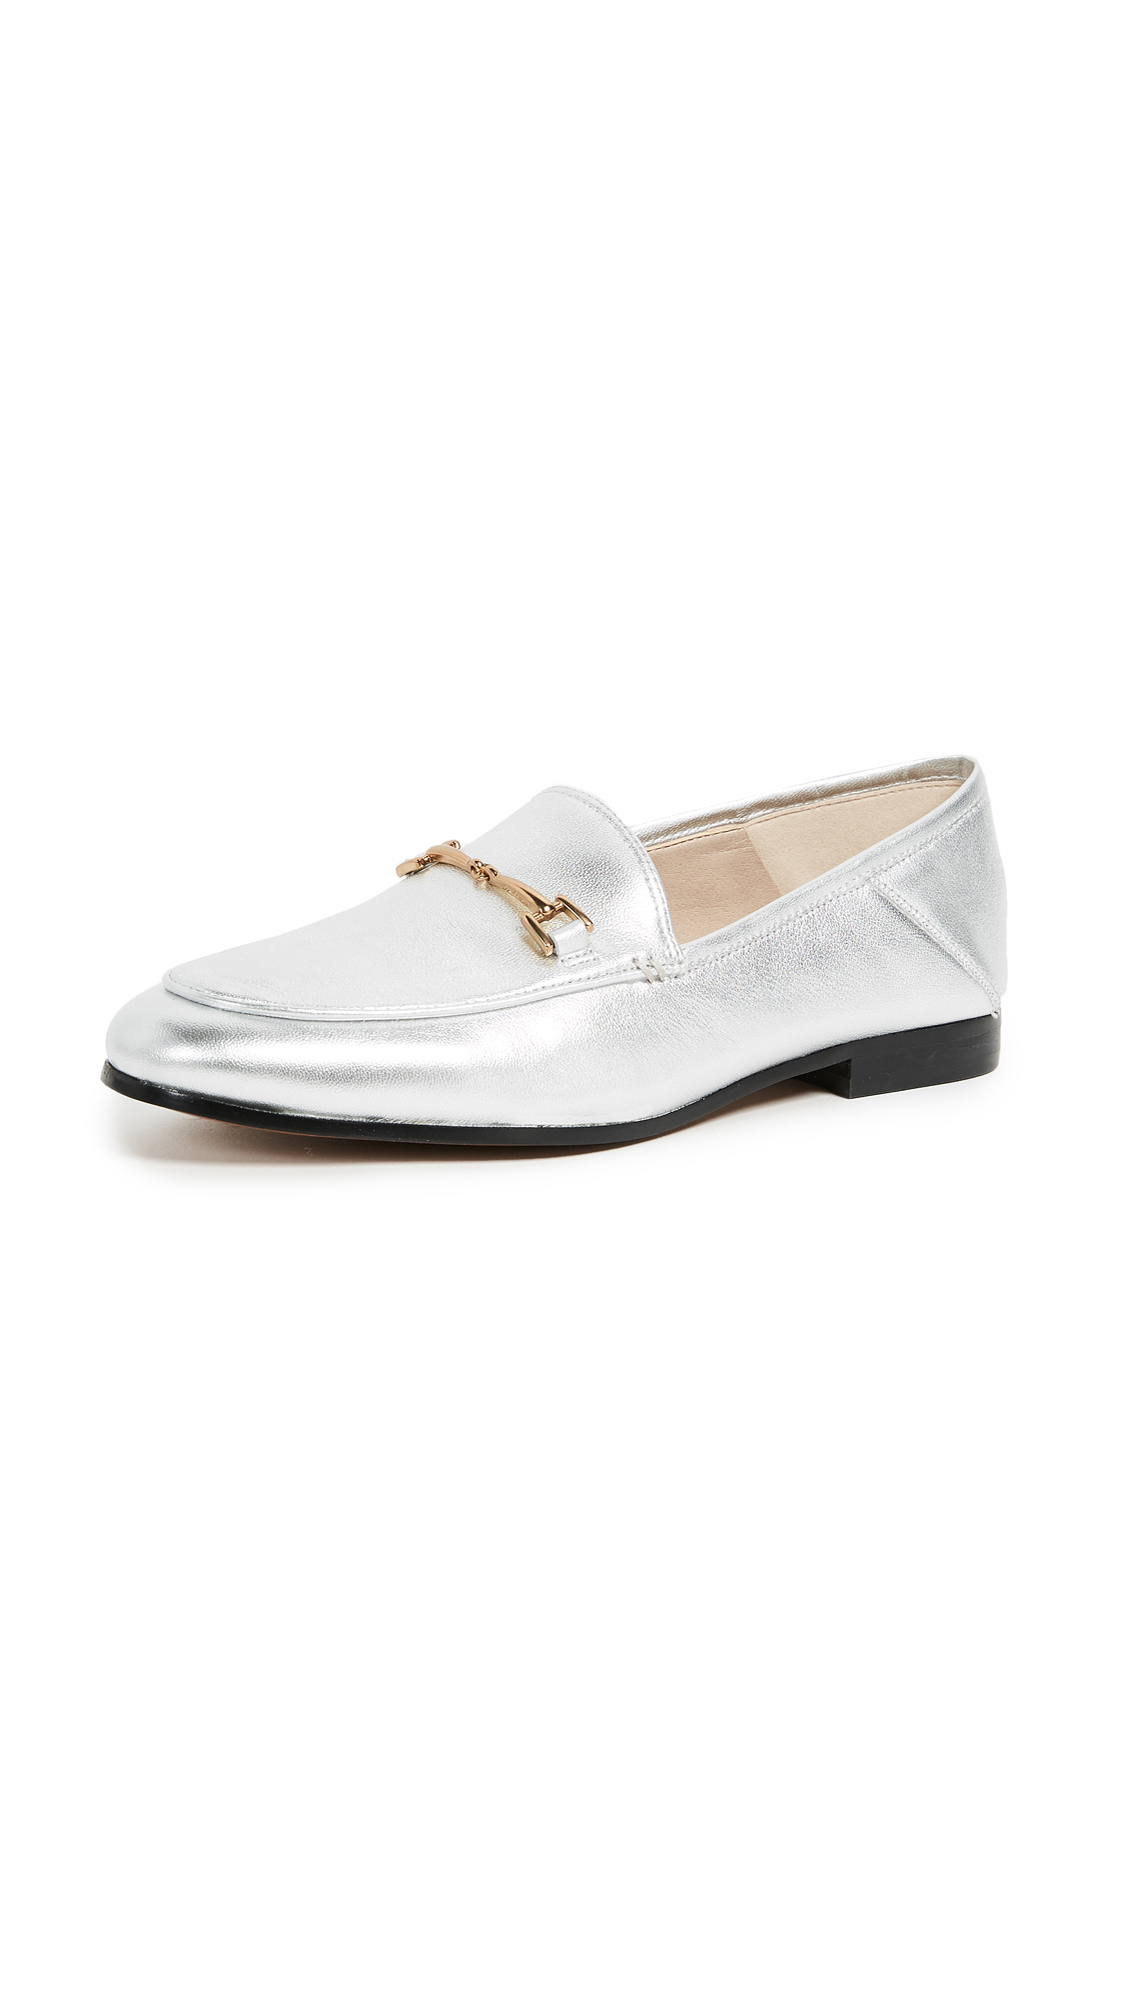 Sam Edelman Loraine Loafers - Soft Silver